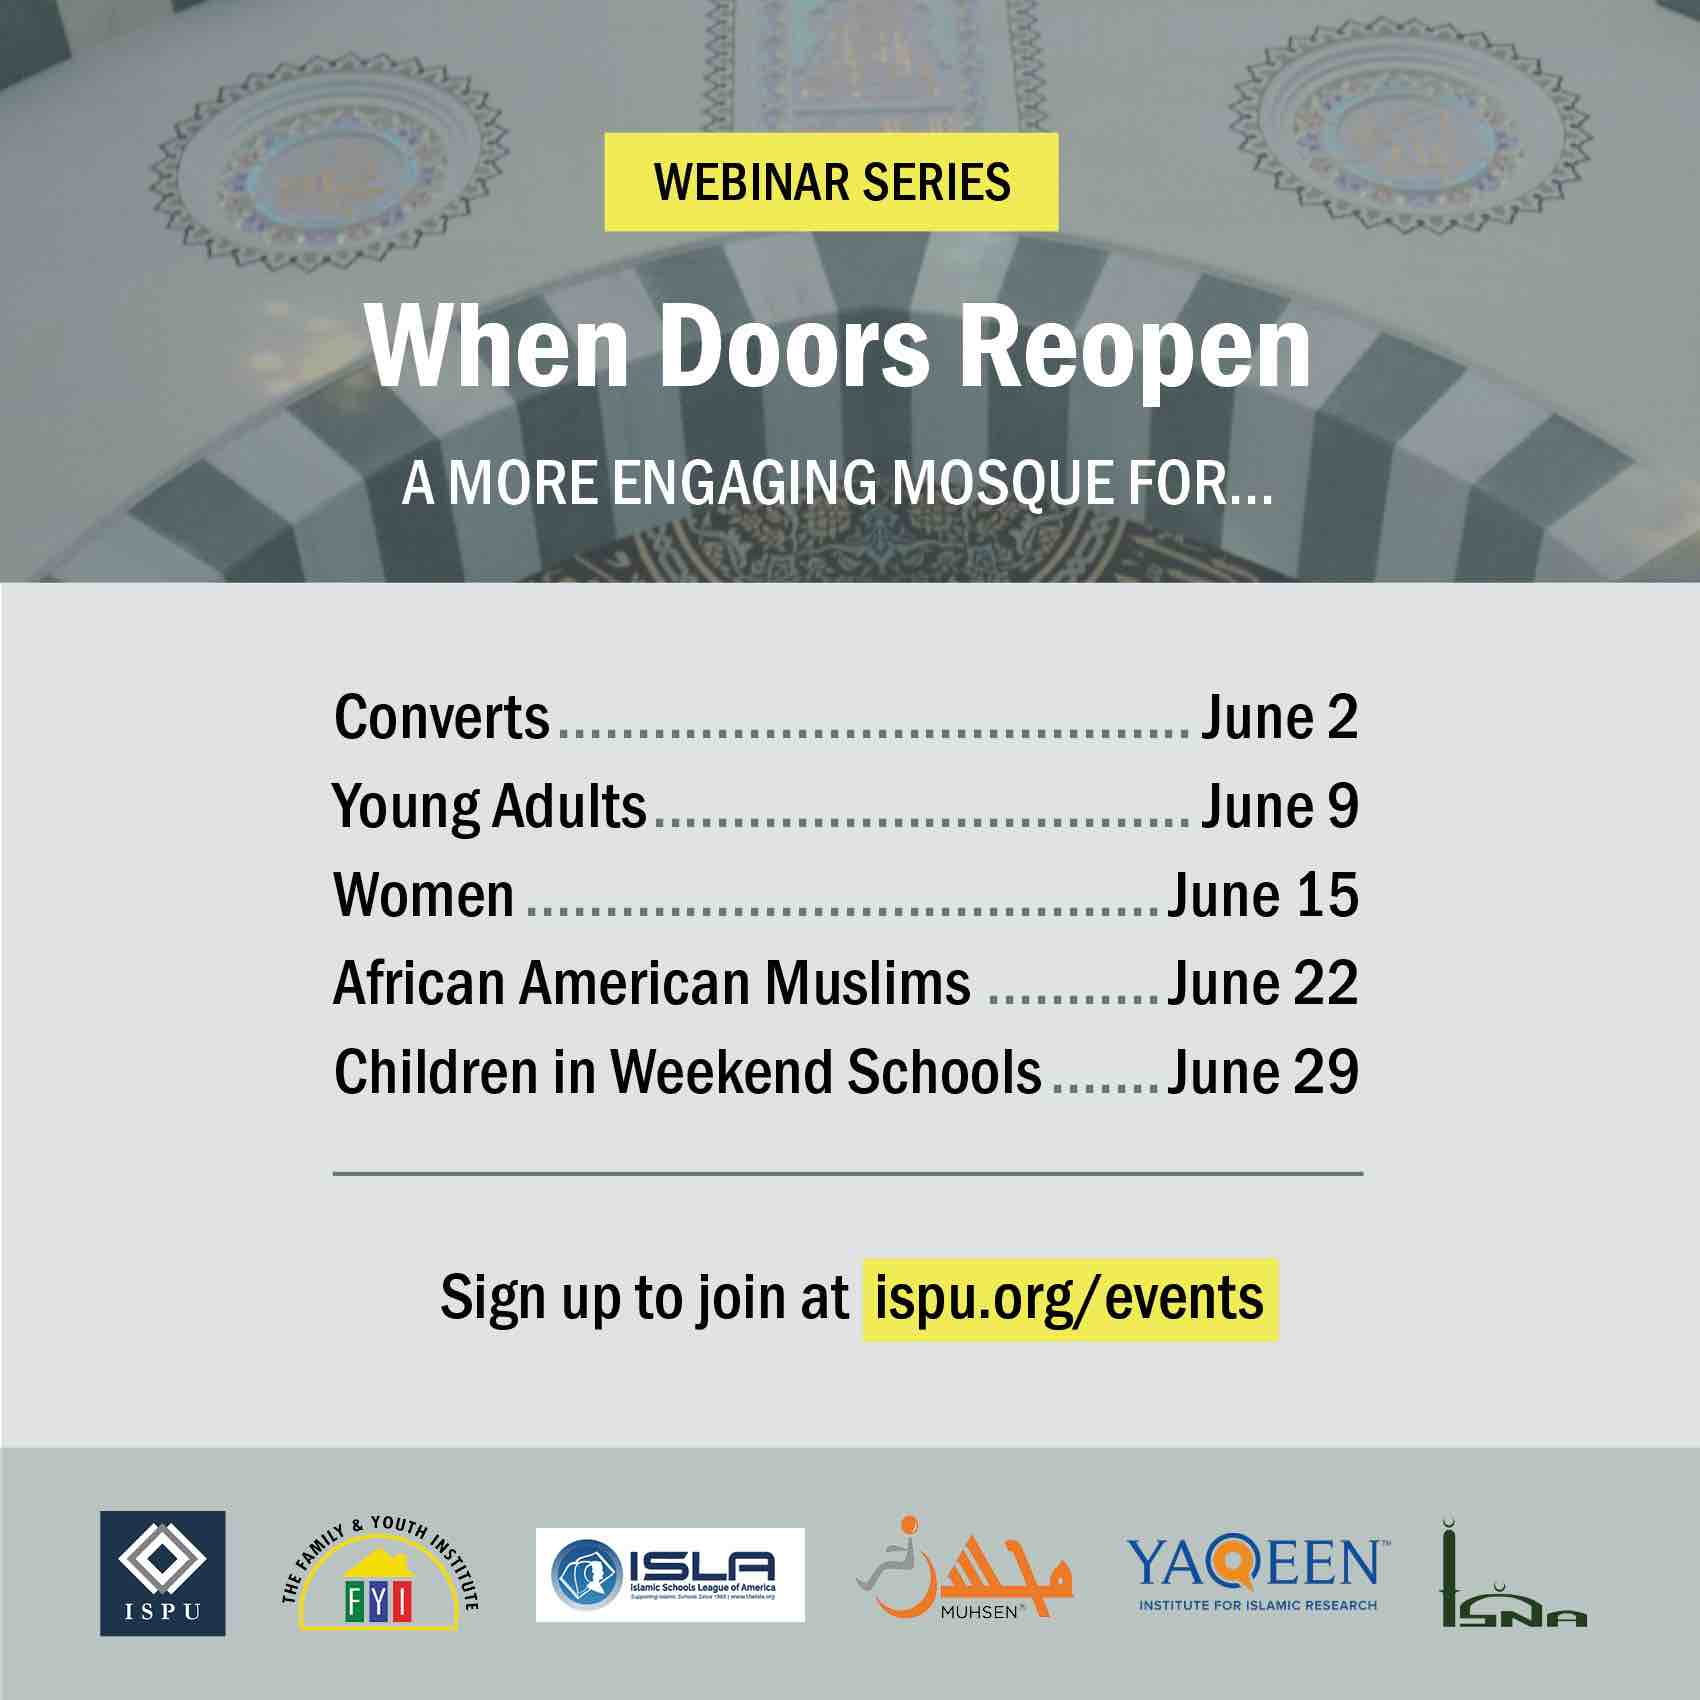 Webinar Series - When Doors Reopen graphic